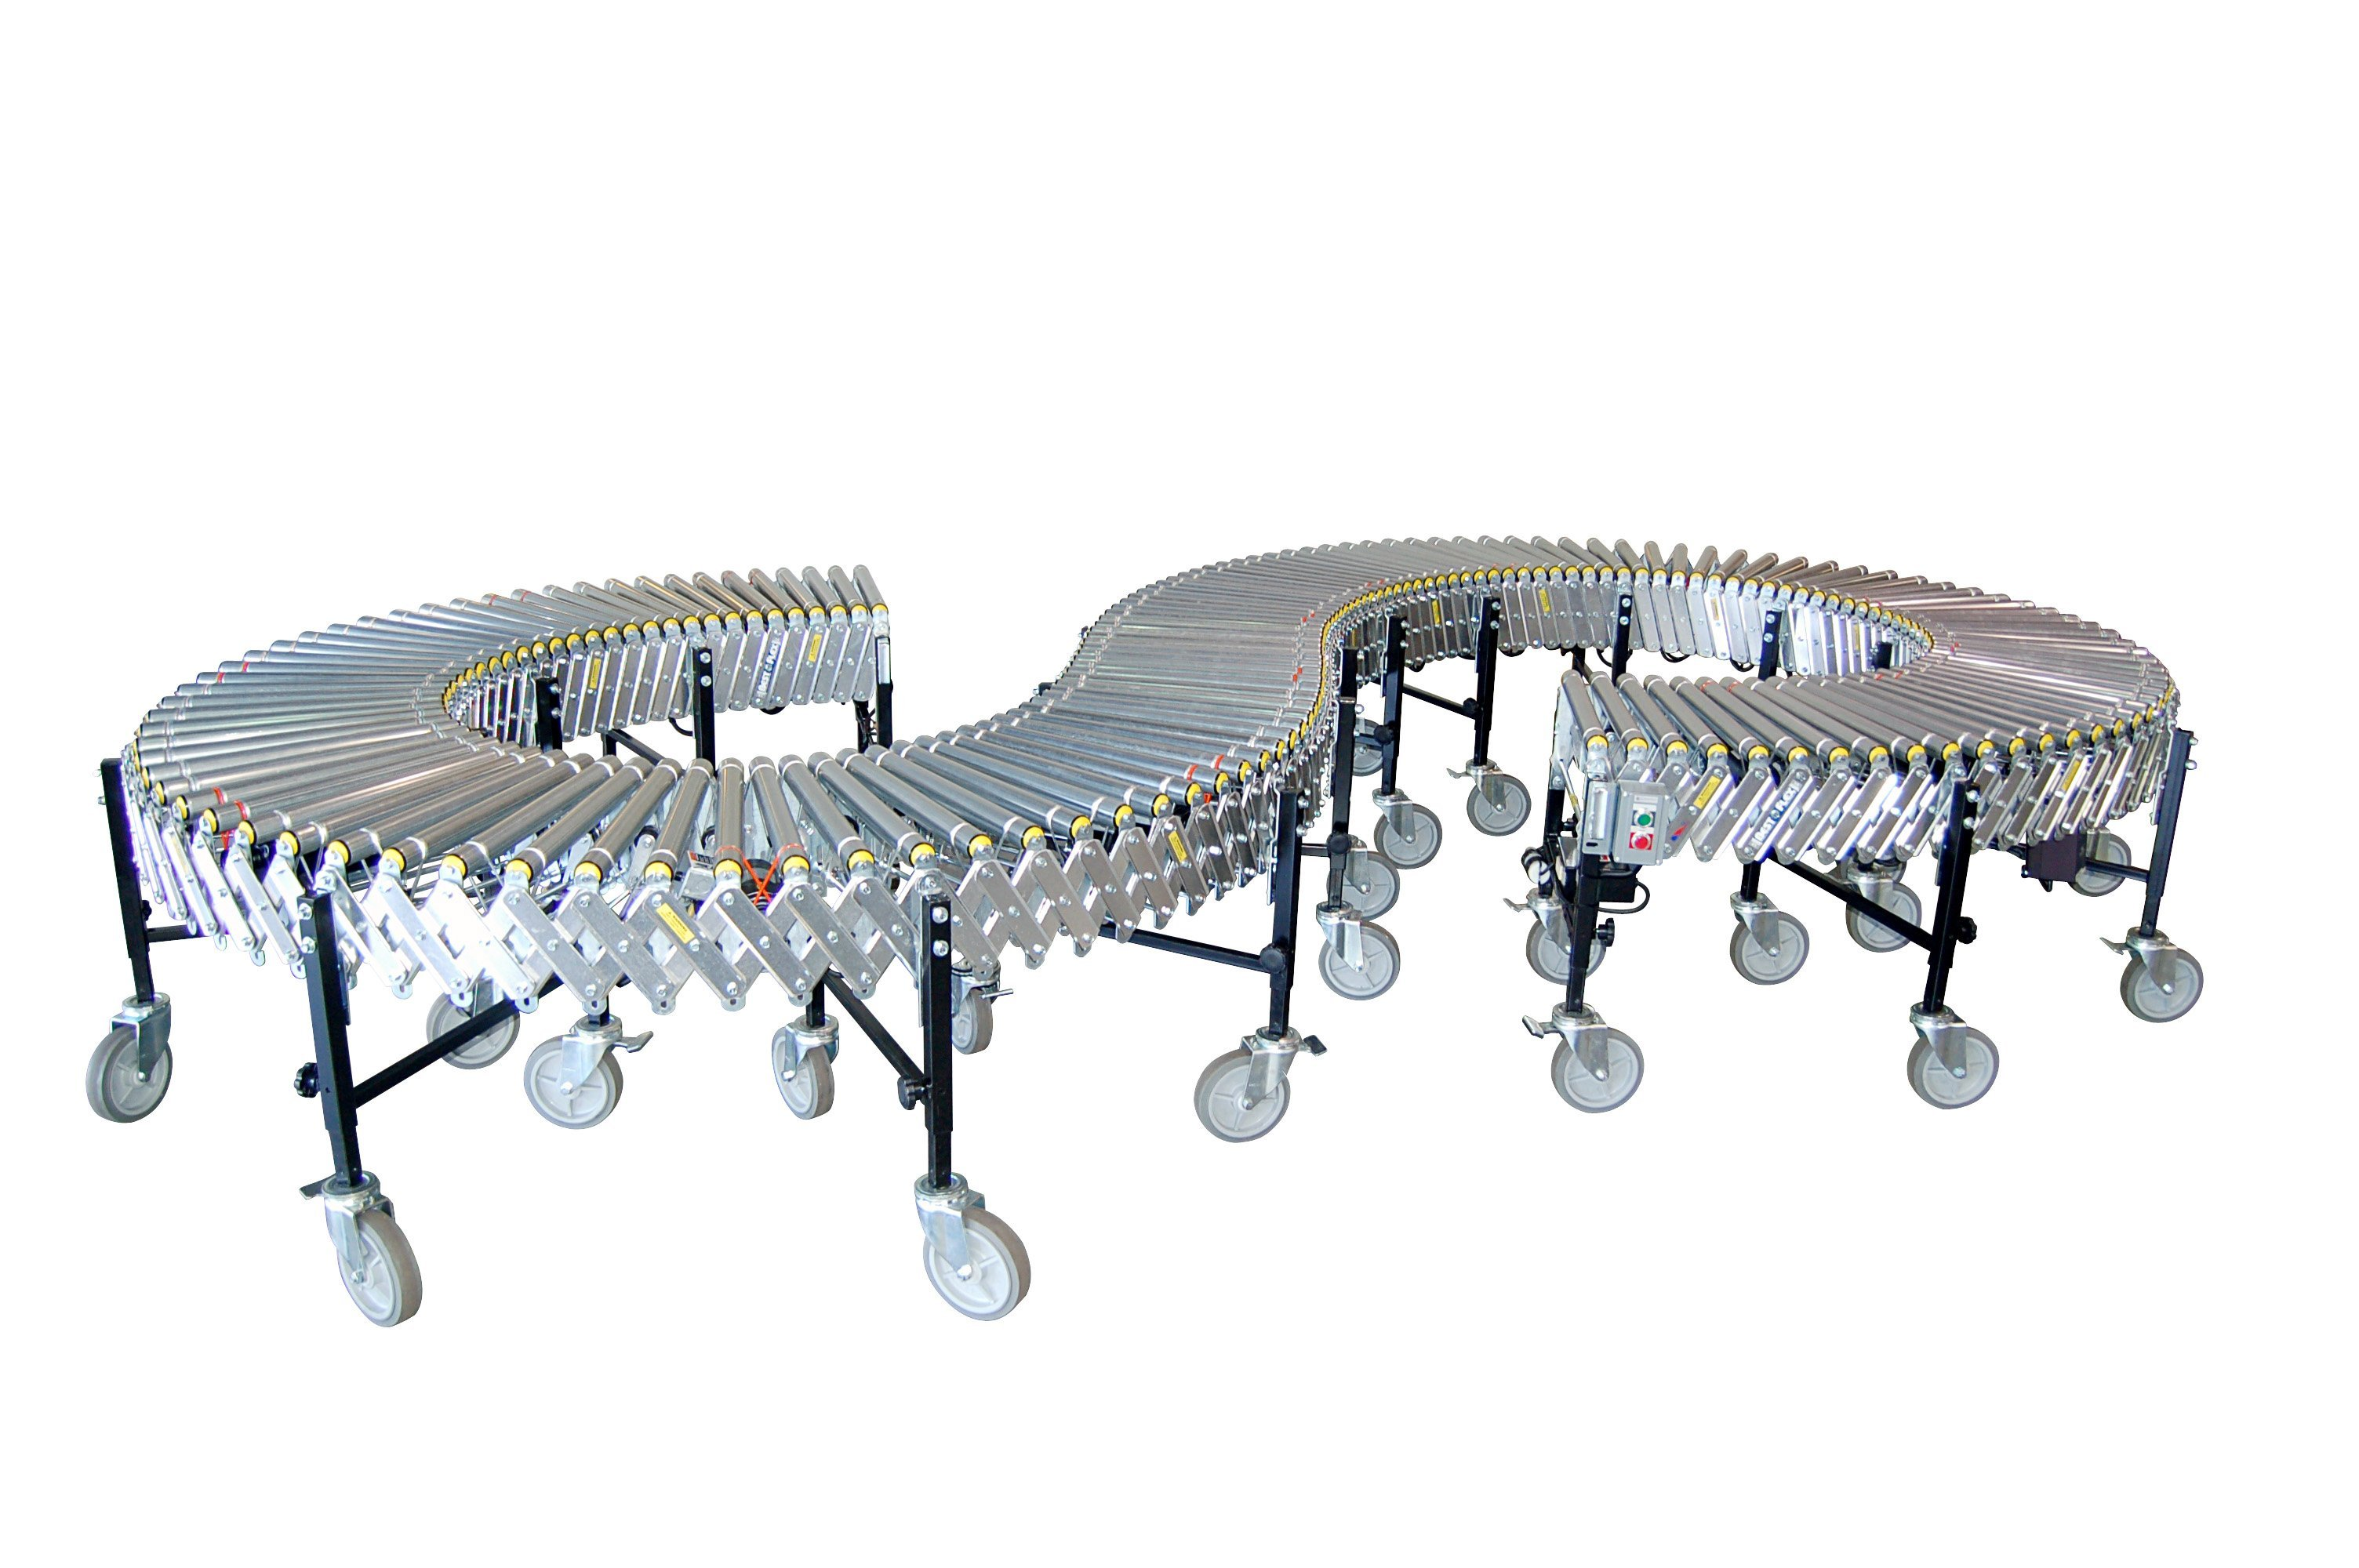 Bestflex Flexible Power 1.9 Series Roller Conveyor